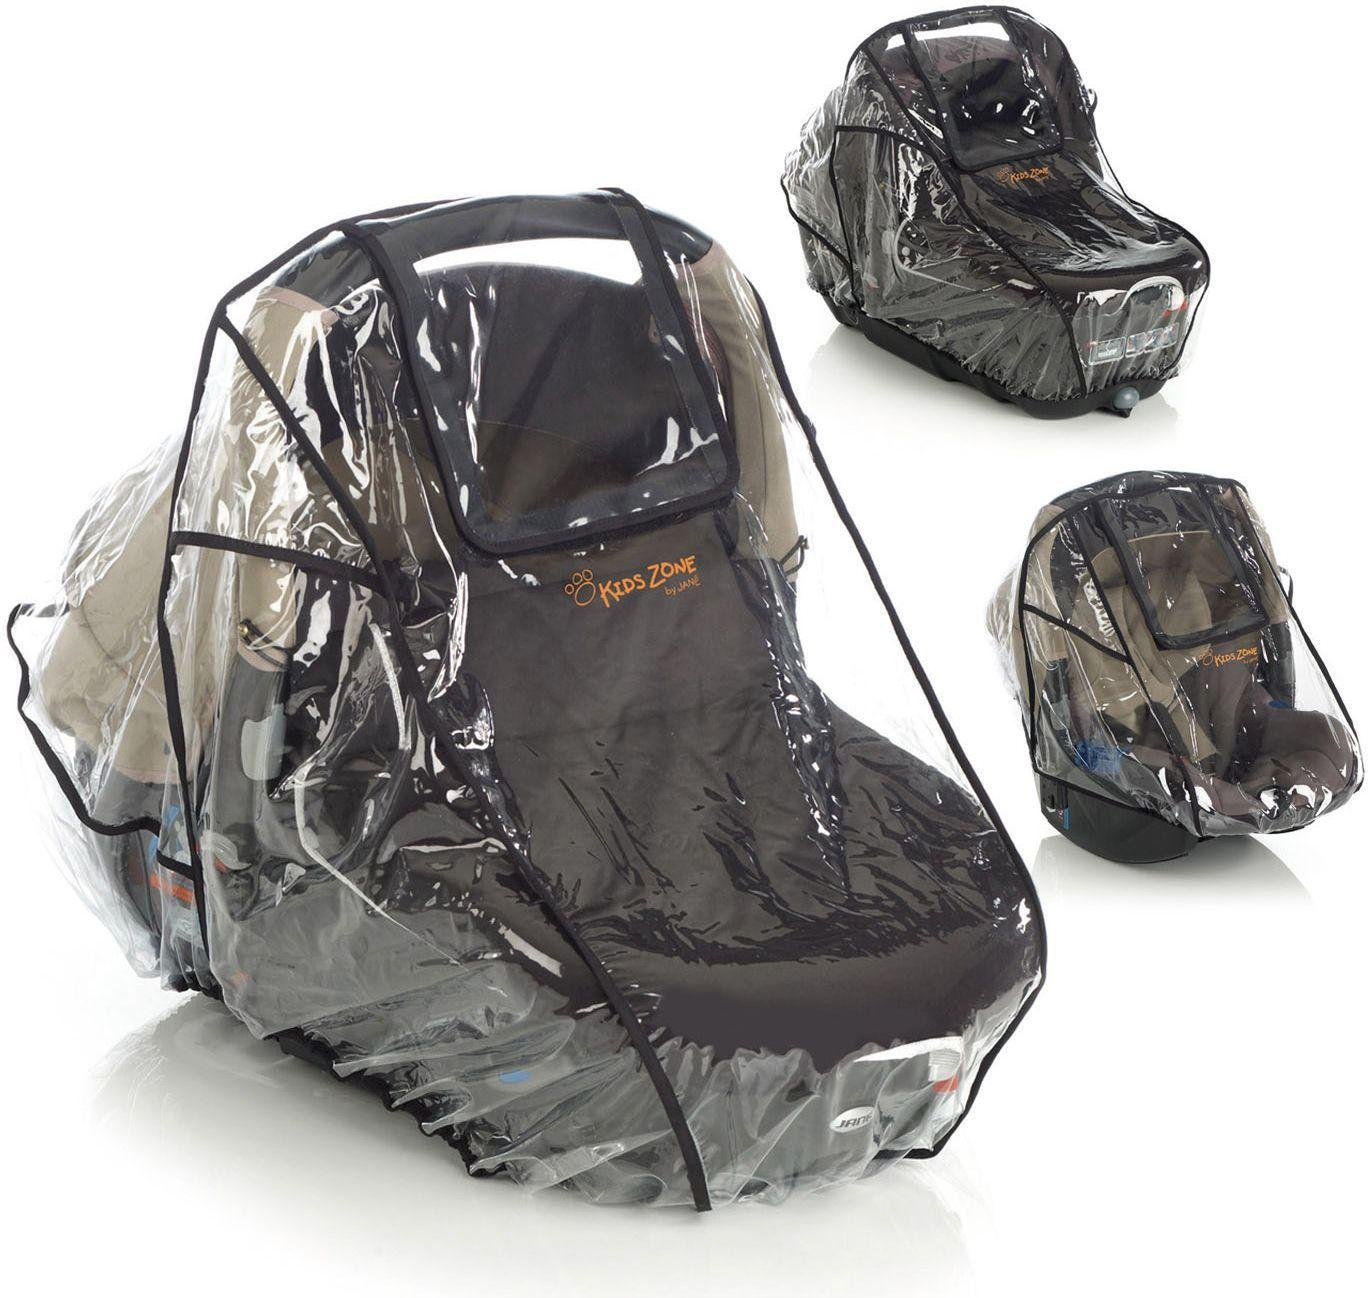 Image of Jane Raincover for Group 0 Pushchairs.